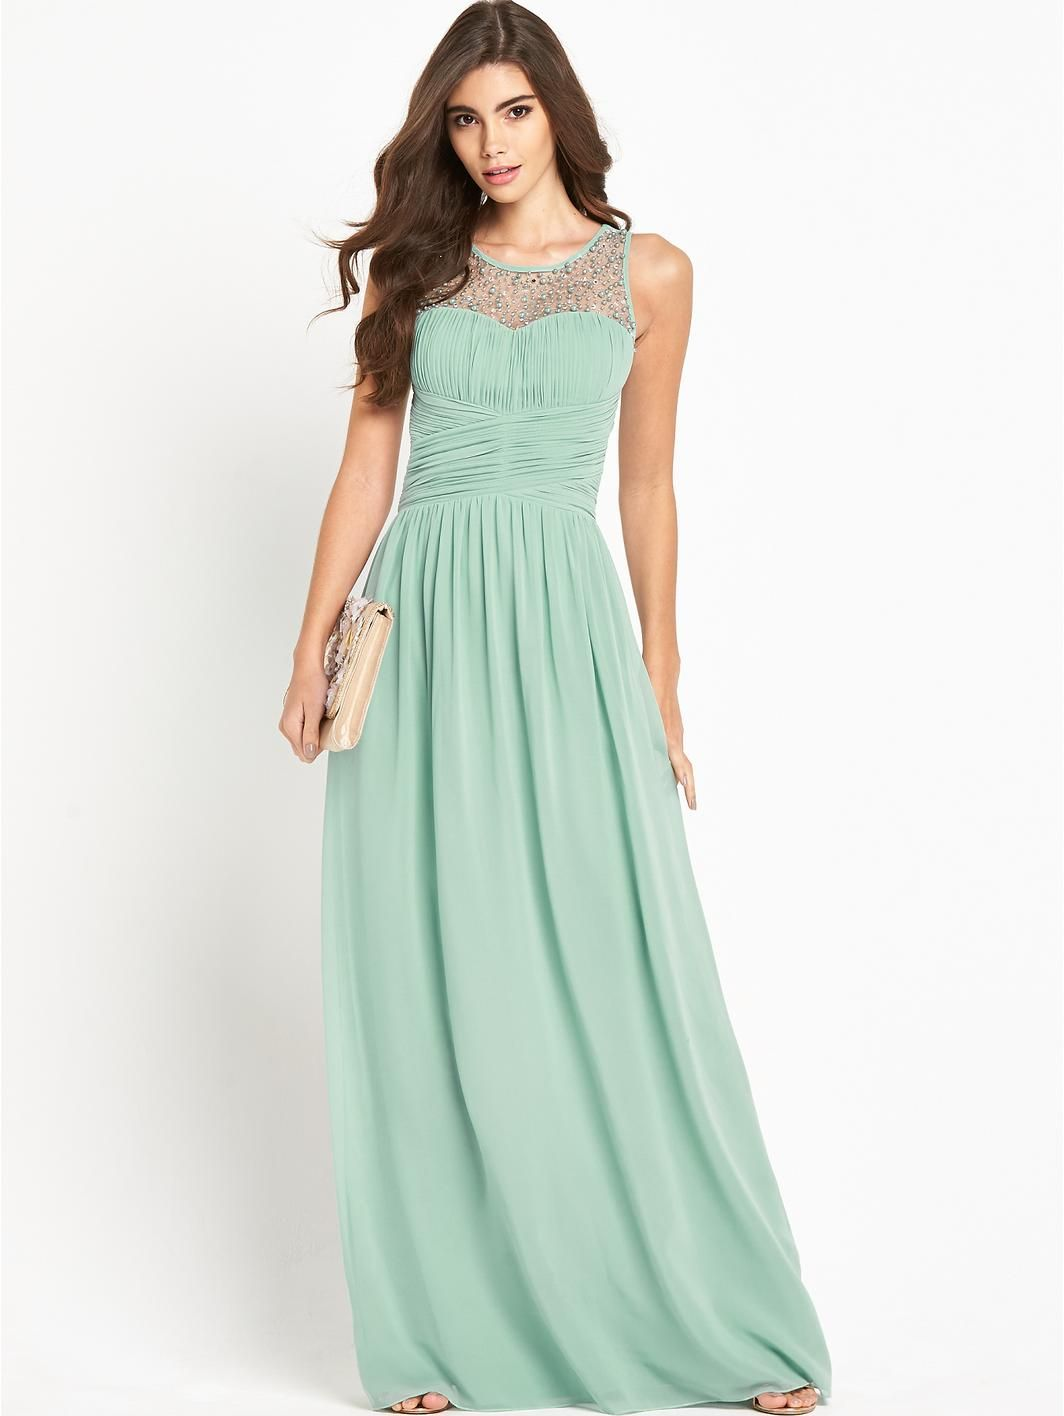 Littlewoods bridesmaid dresses image collections braidsmaid embellished maxi dress mint bridesmaid dresses wedding and weddings embellished maxi dress ombrellifo image collections ombrellifo Choice Image